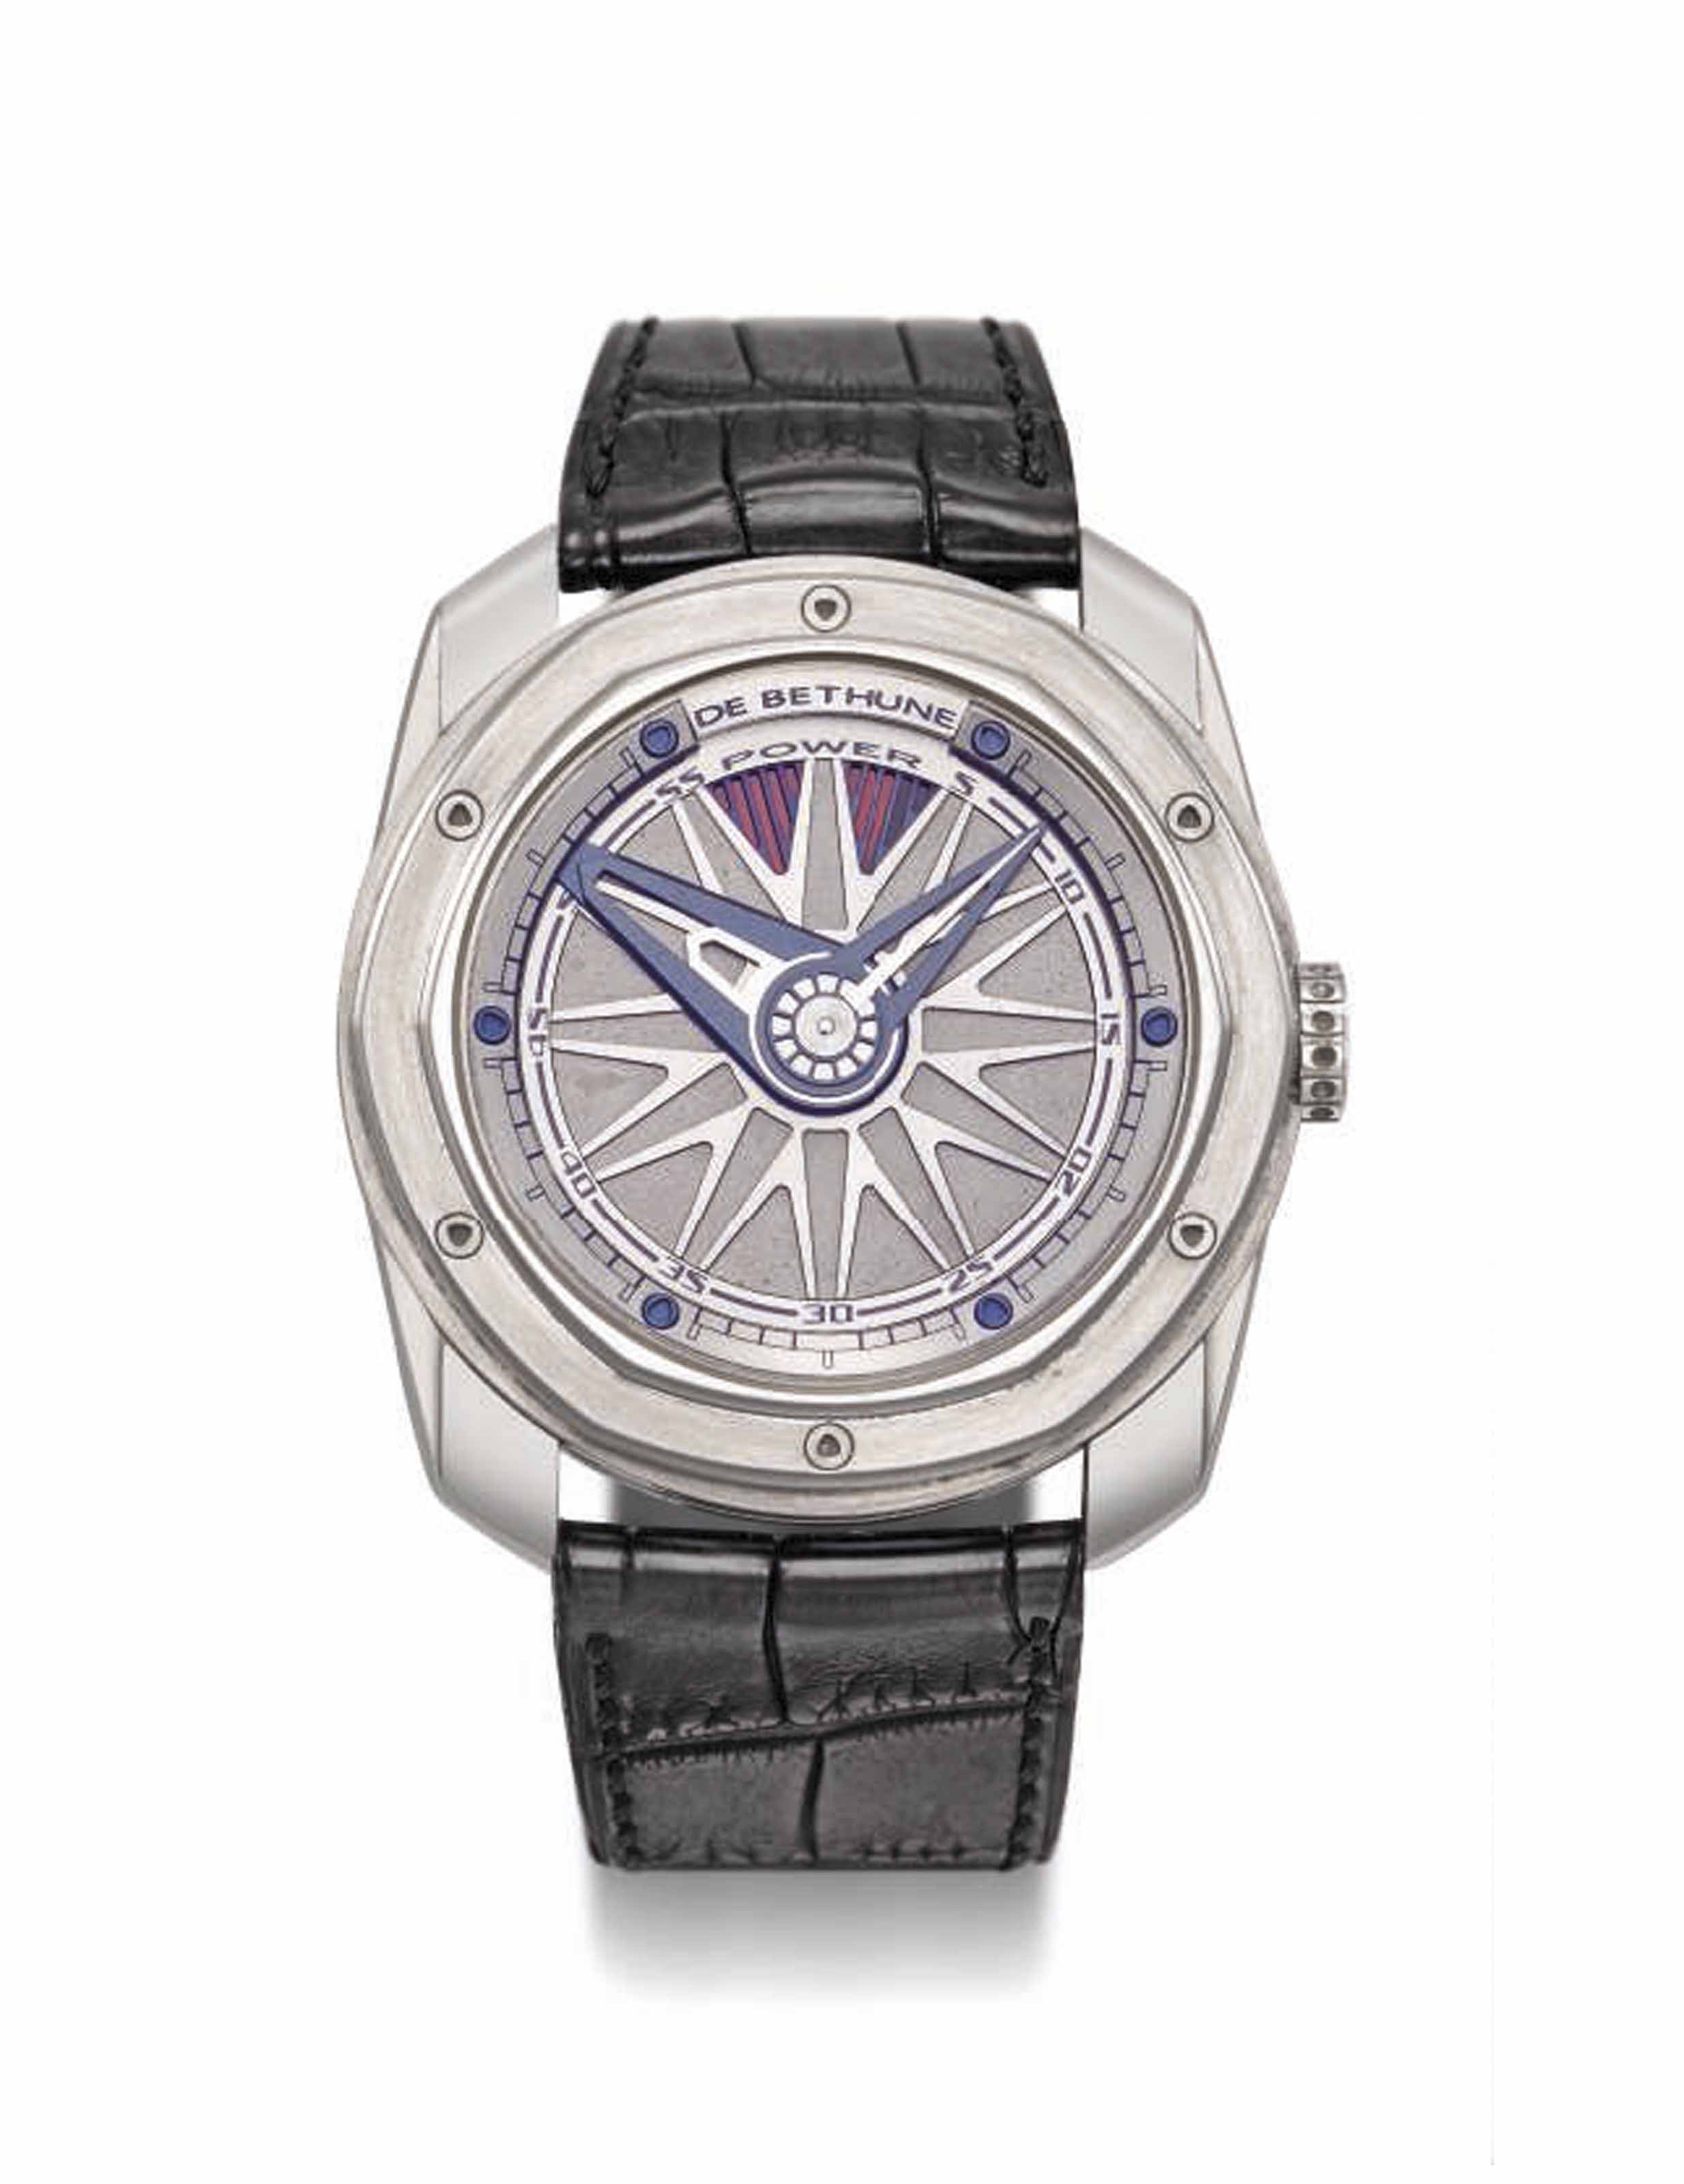 DE BETHUNE. A FINE, LARGE AND INNOVATIVE TITANIUM AUTOMATIC WRISTWATCH WITH SPEED REGULATING SYSTEM, 6-DAYS POWER RESERVE INDICATION, CERTIFICATE AND BOX